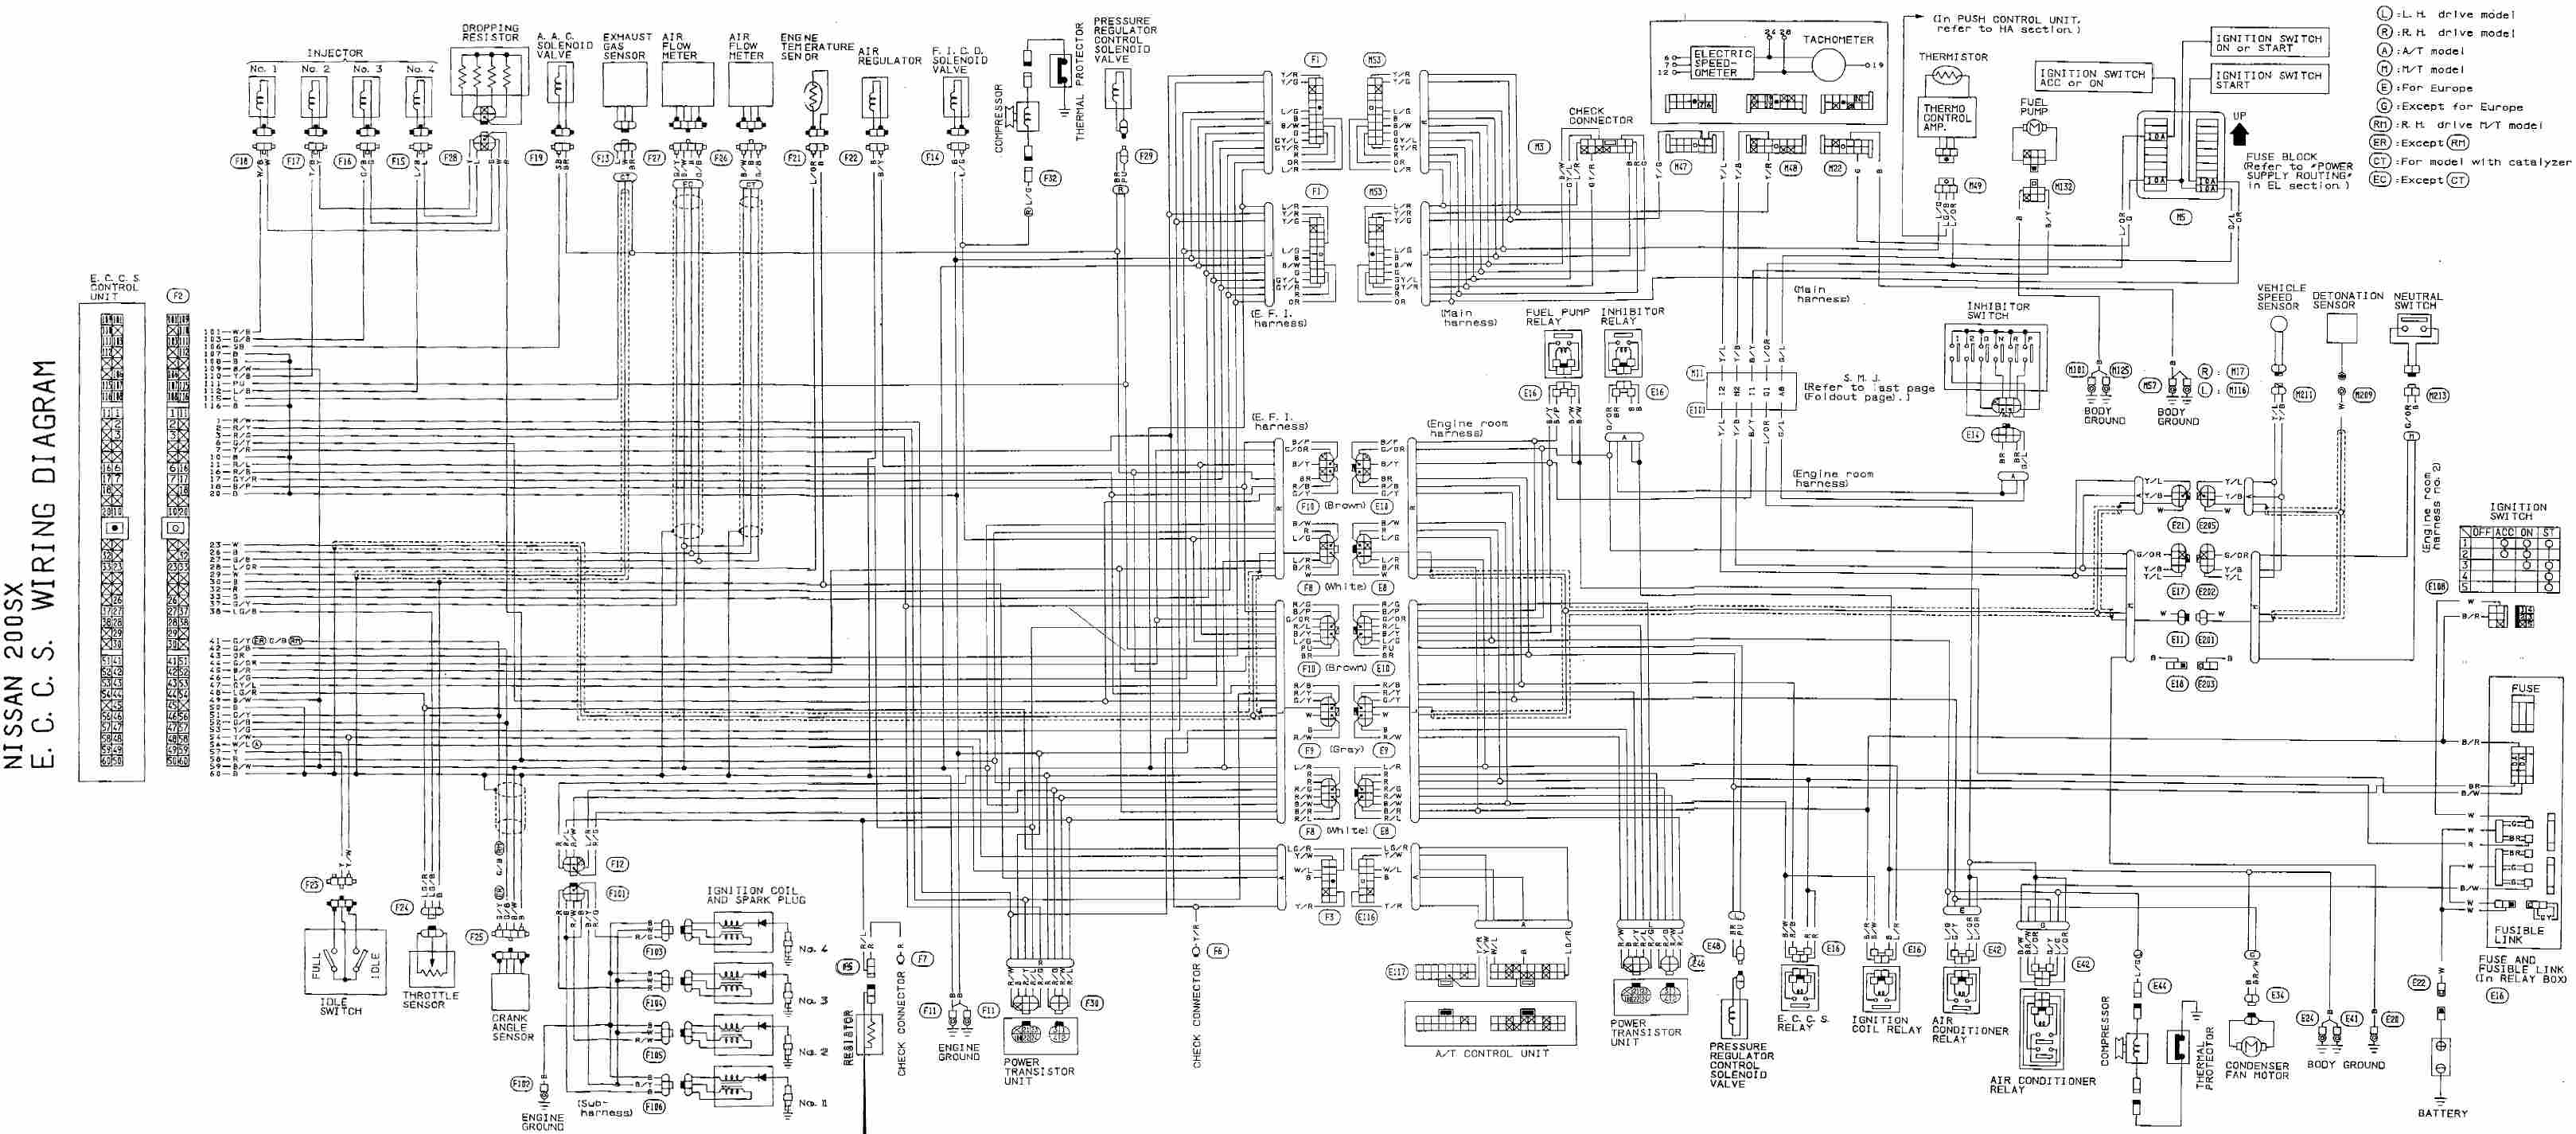 Nissan Tiida Air Con Wiring Diagram Diagrams Box Versa Lighting